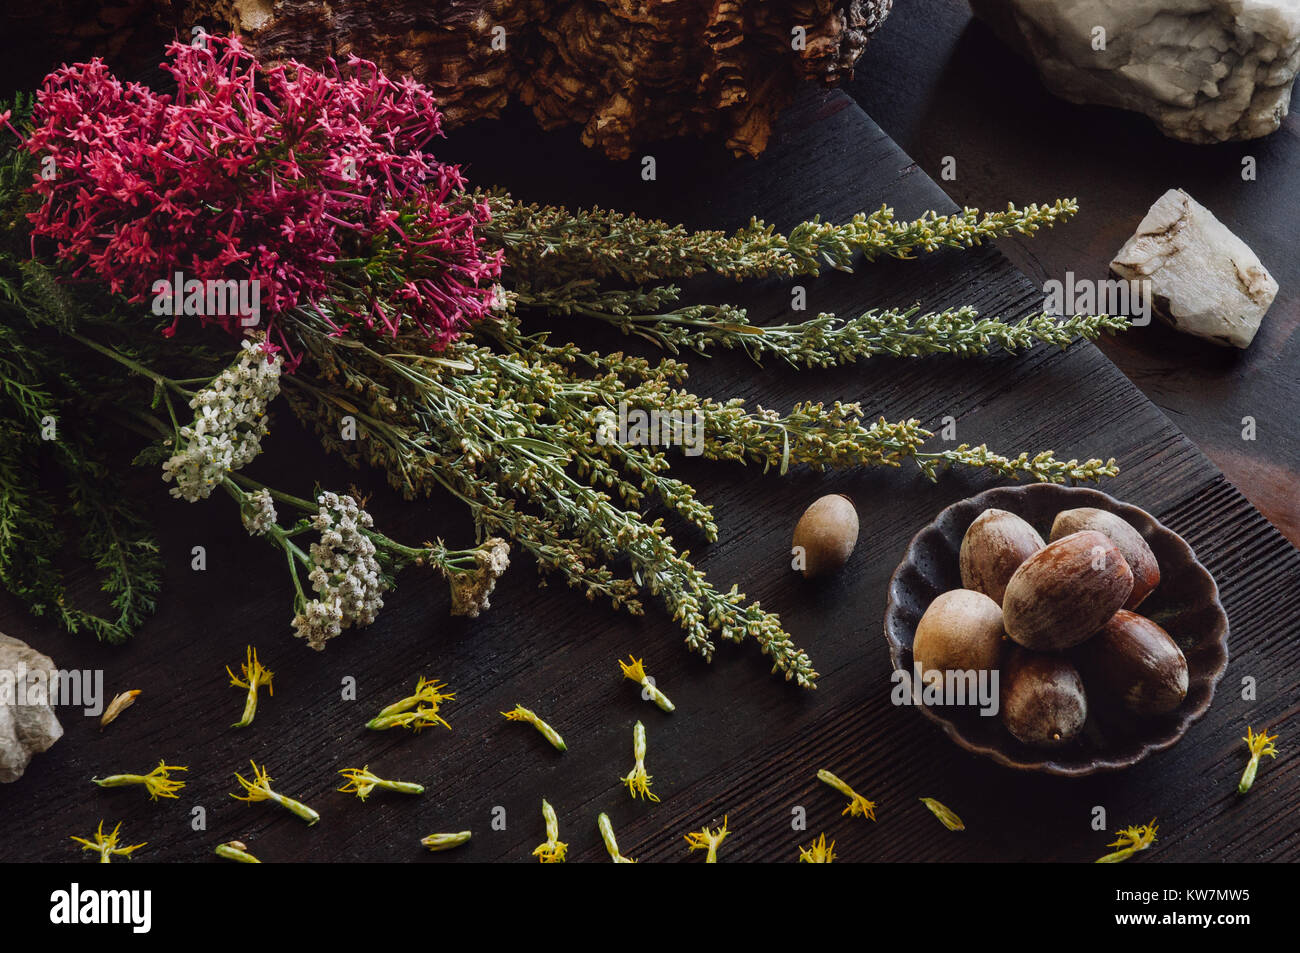 Autumn Collection with Acorns, Quartzsite and Herbs - Stock Image